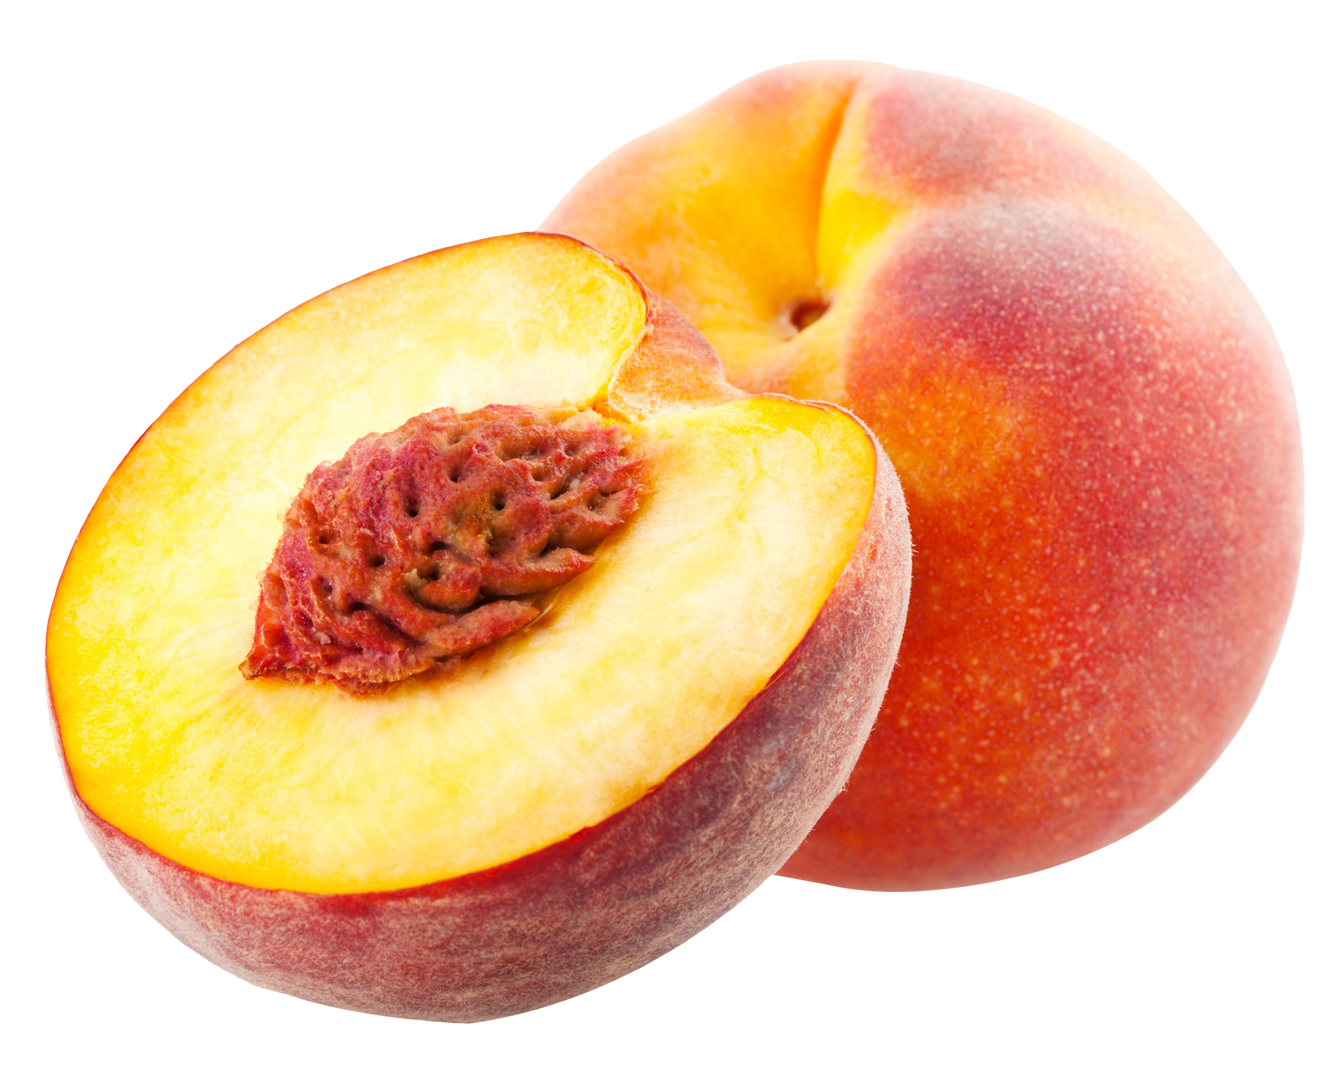 Peach PNG image download